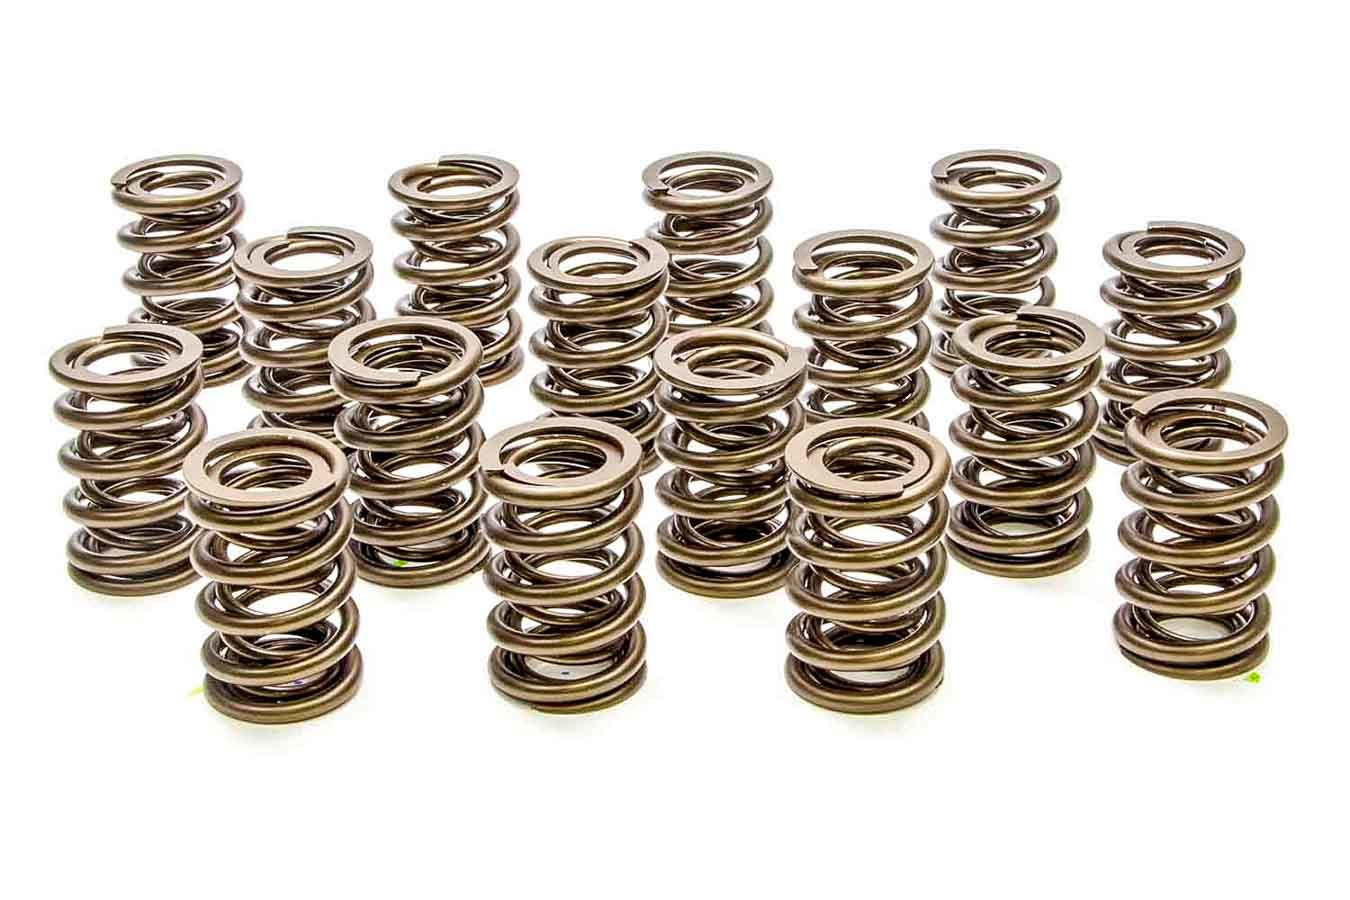 PAC Racing Springs PAC-1904 Valve Spring, Hot Rod Series, Dual Spring, 370 lb/in Spring Rate, 1.010 in Coil Bind, 1.290 in OD, GM LS-Series, Set of 16